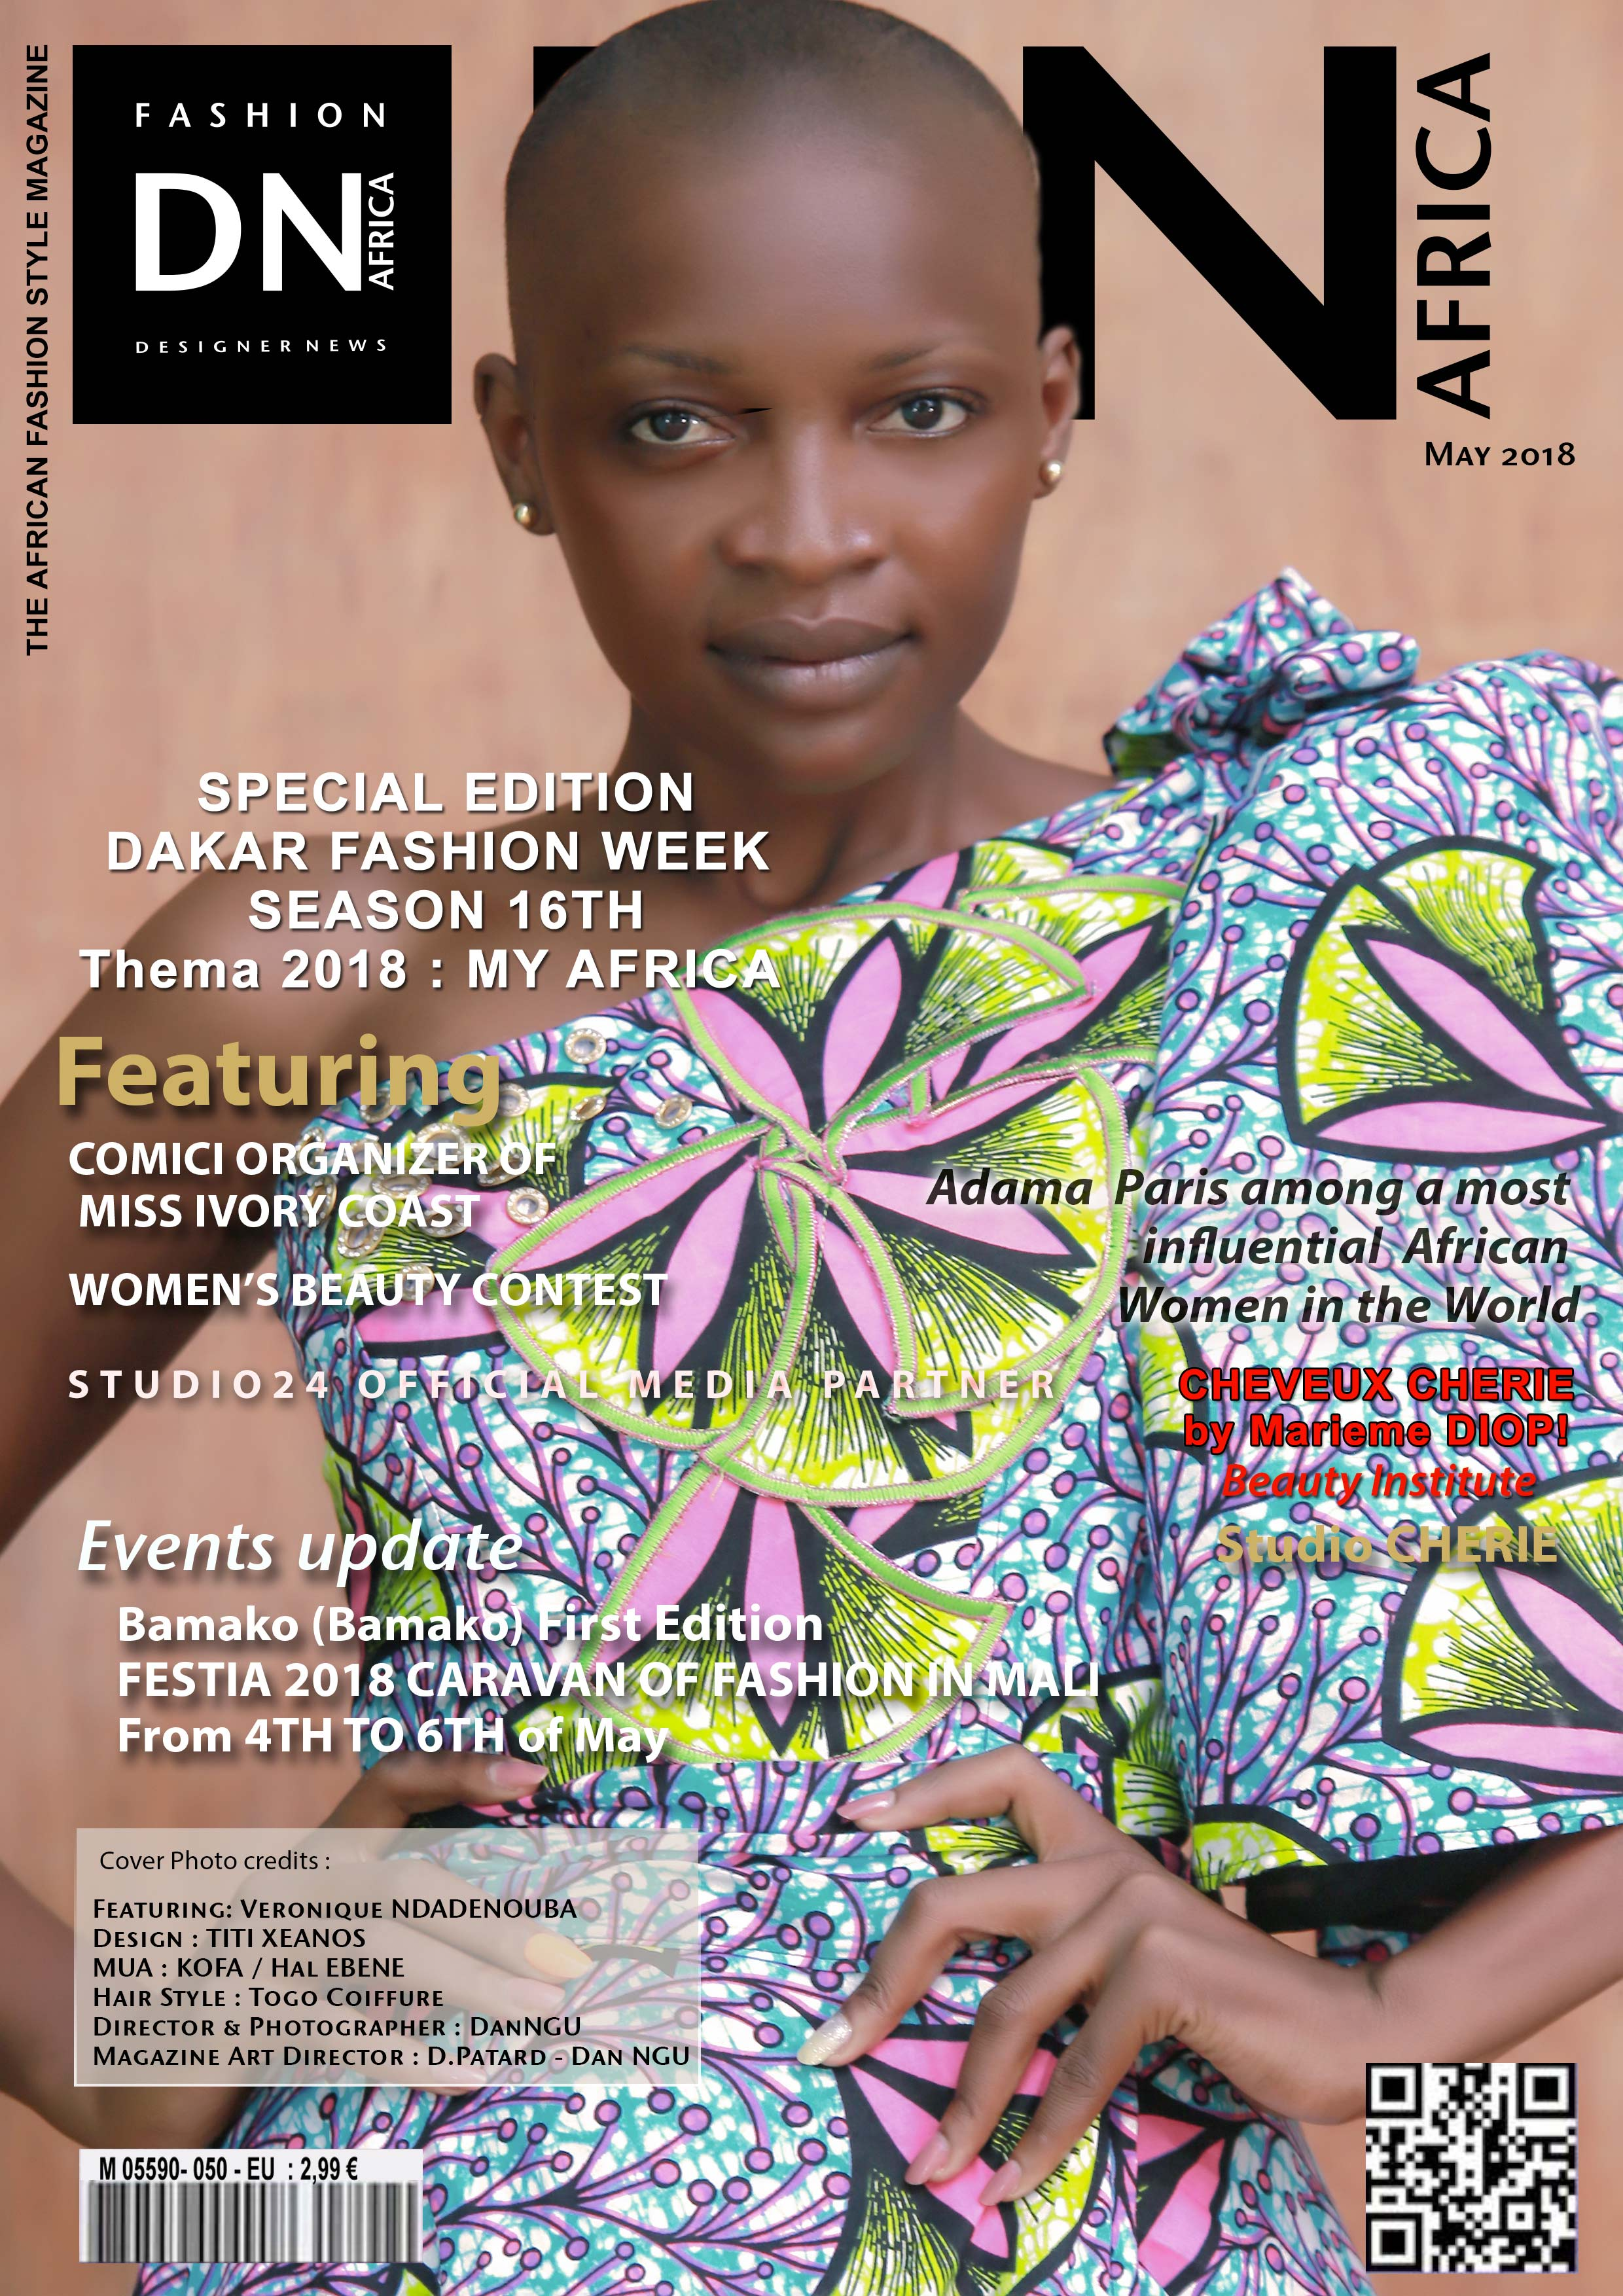 AFRICAN FASHION STYLE MAGAZINE – VÉRONIQUE NDADENOUBA BÉNÉDICTE - MAY 2018 COVER - Media Partner DN MAG, DN AFRICA -STUDIO 24 NIGERIA - STUDIO 24 INTERNATIONAL